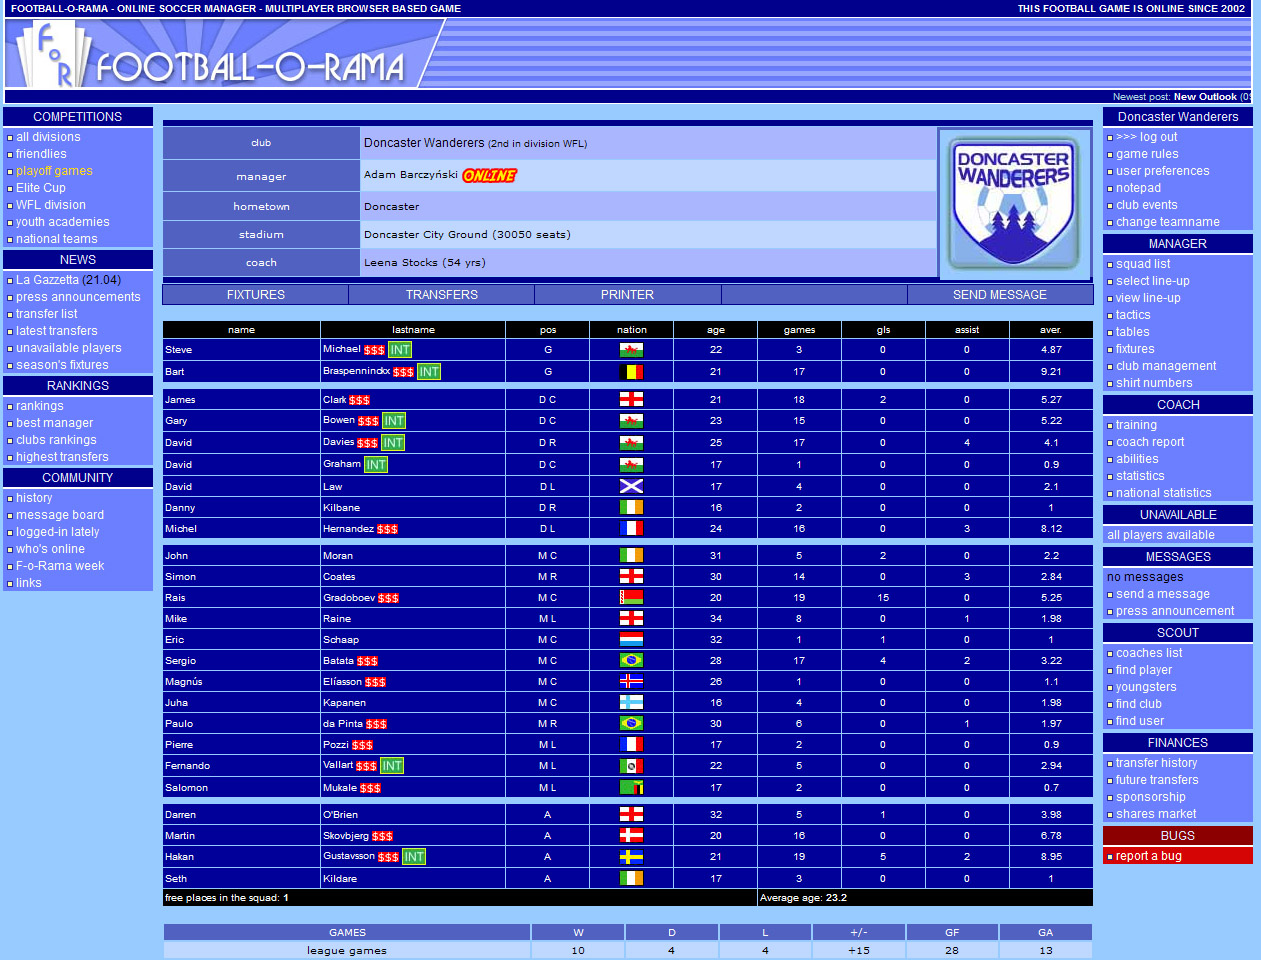 Football-o-Rama online soccer manager in 2006